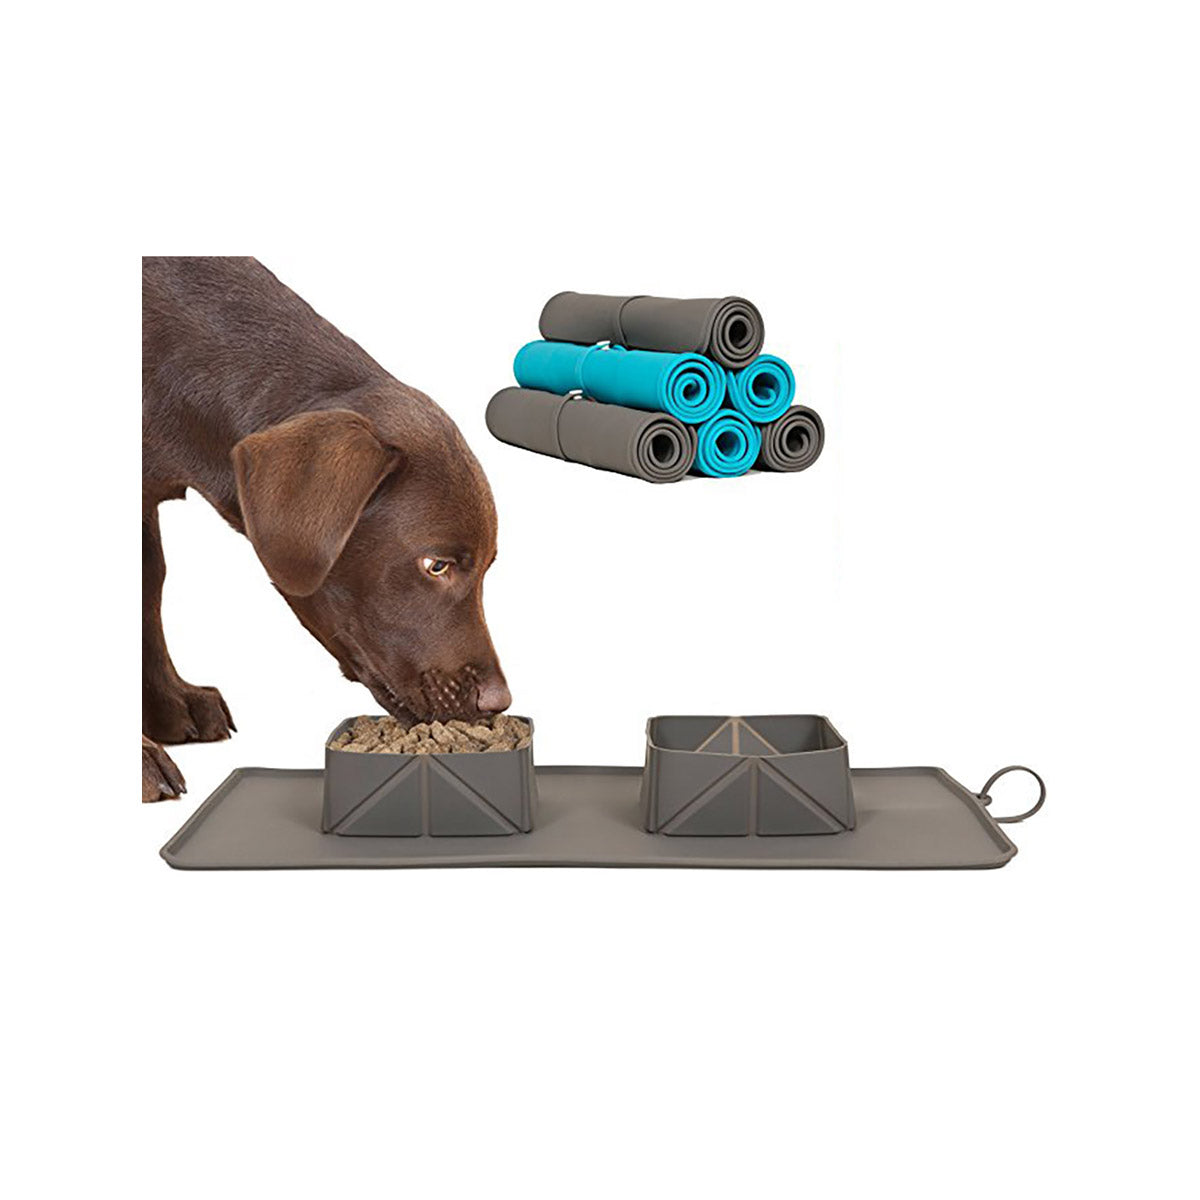 Rollabowl - Foldable Silicone Pet Feeding Mat with Built-in Feeding Bowls